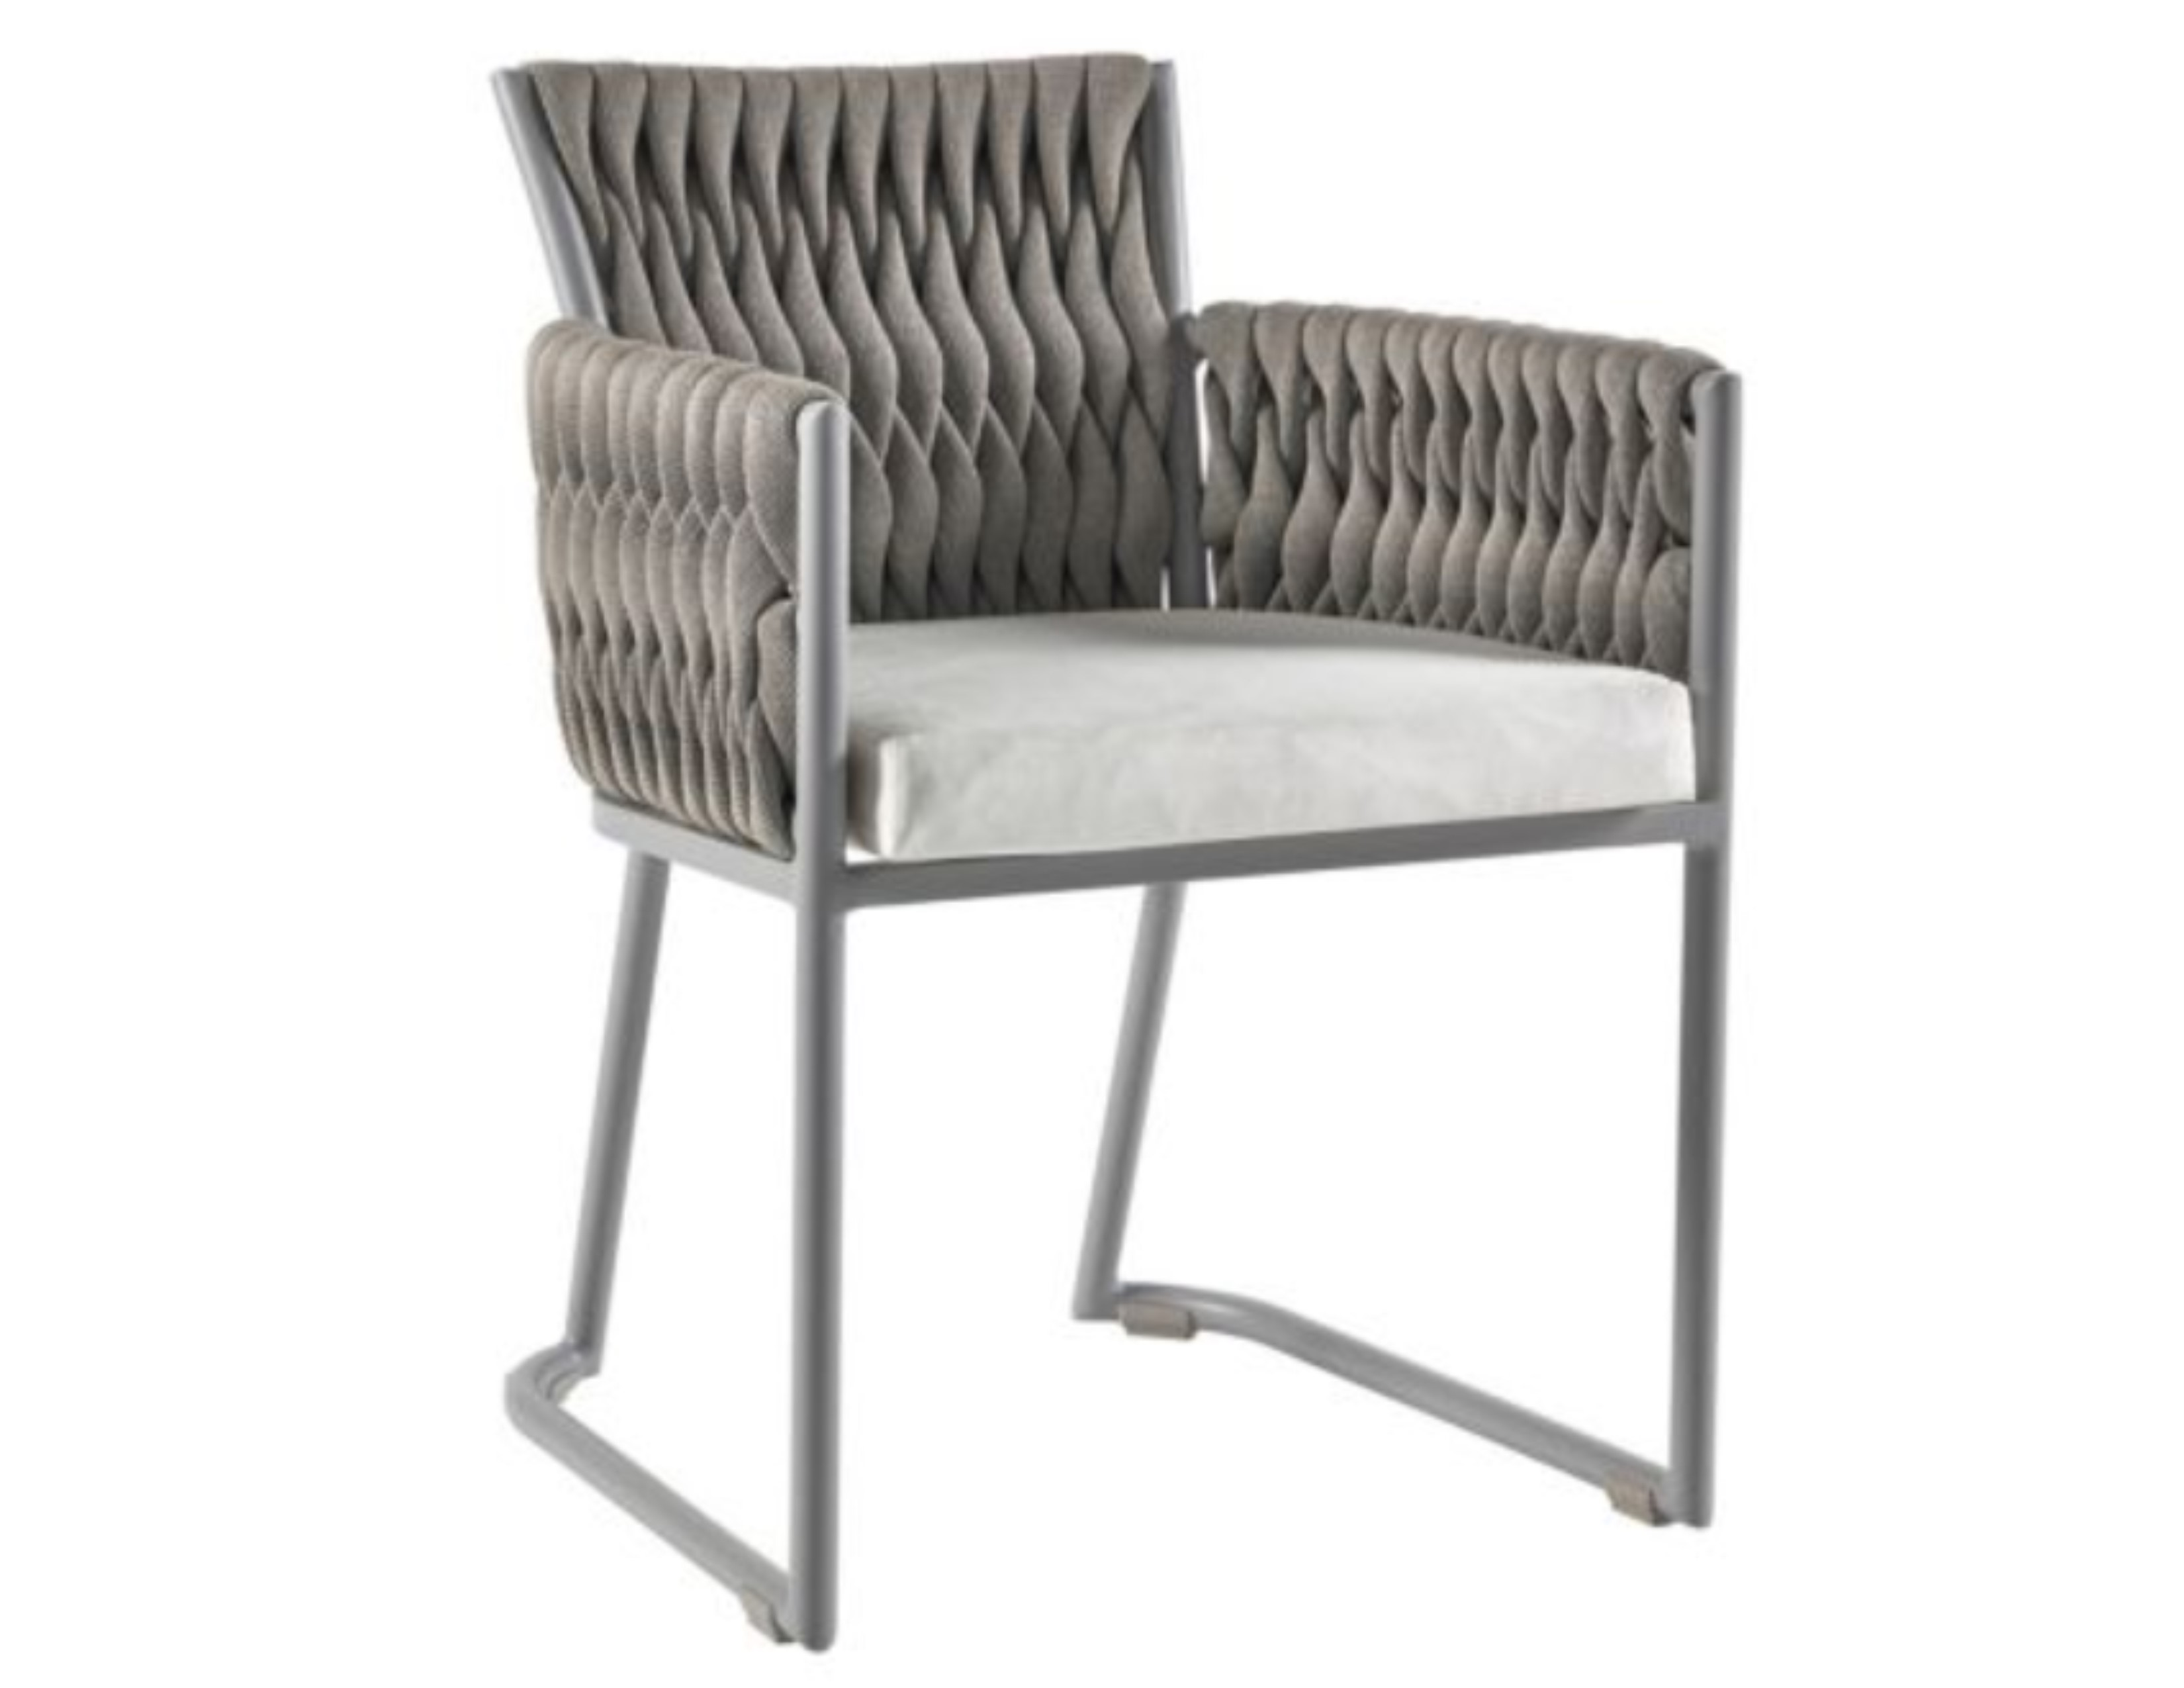 Basket Contemporary Dining Chair  Couture Outdoor